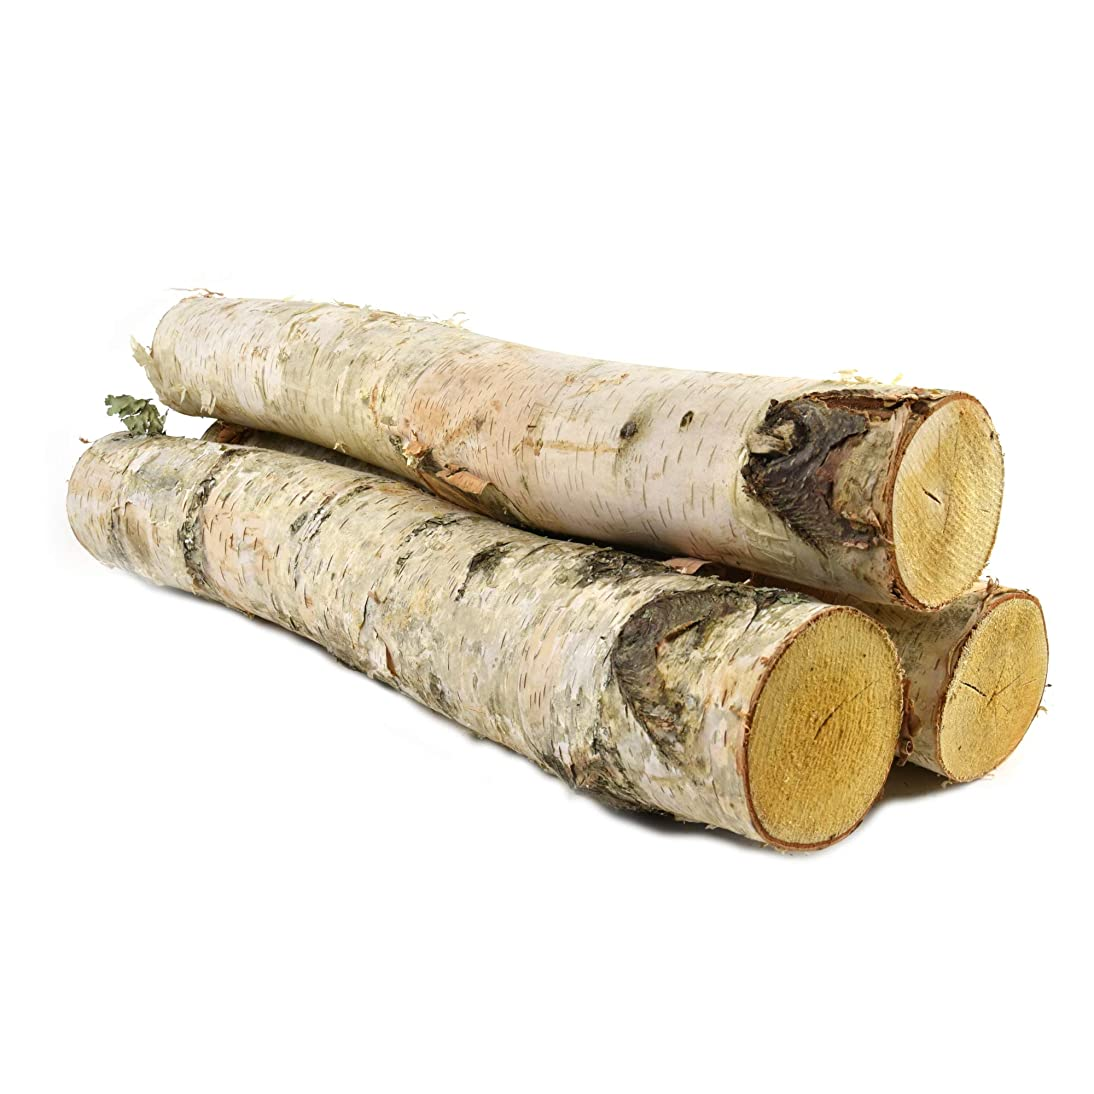 Birchwood LOGS - Excellent for Decorations, Holidays, Fireplaces or Patios. Adds a Warm, Rustic Touch to Any Occasion! by Woodlandia (3 Logs 18